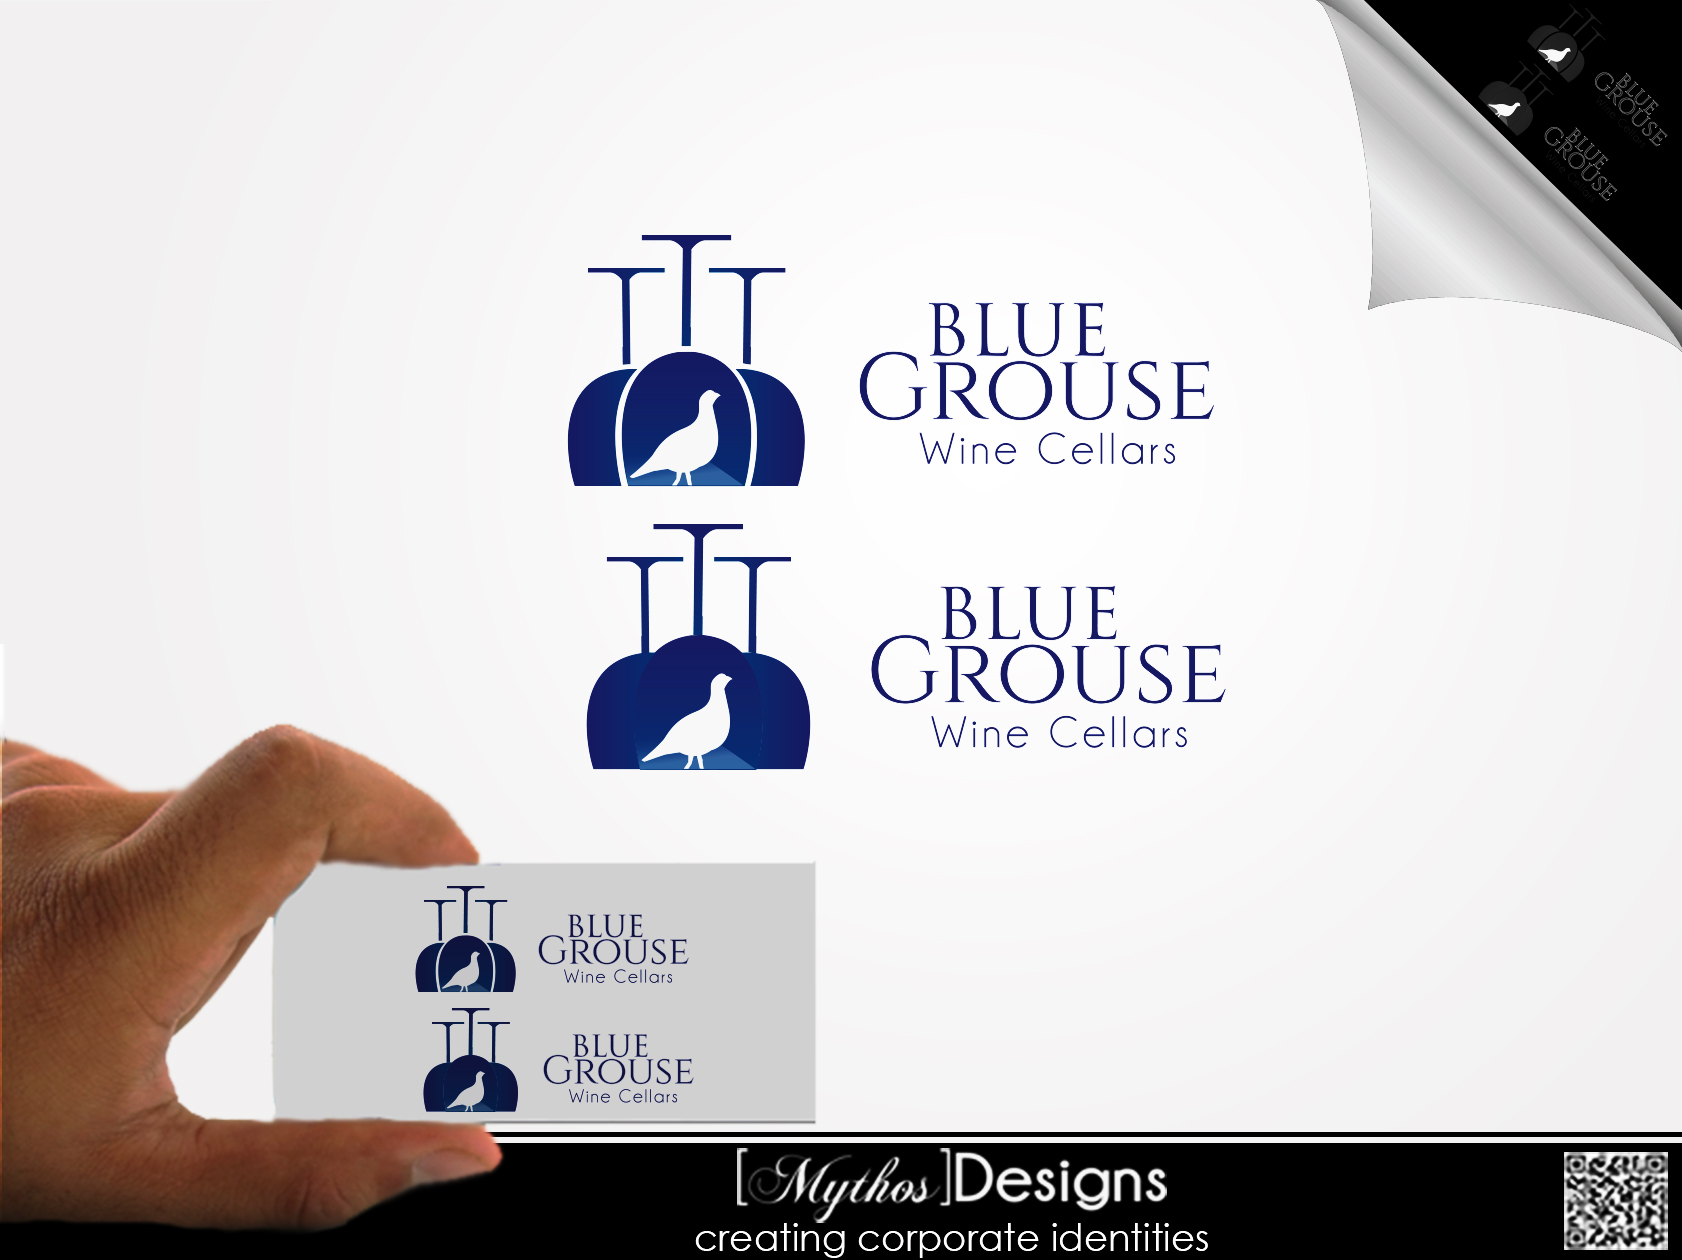 Logo Design by Mythos Designs - Entry No. 184 in the Logo Design Contest Creative Logo Design for Blue Grouse Wine Cellars.